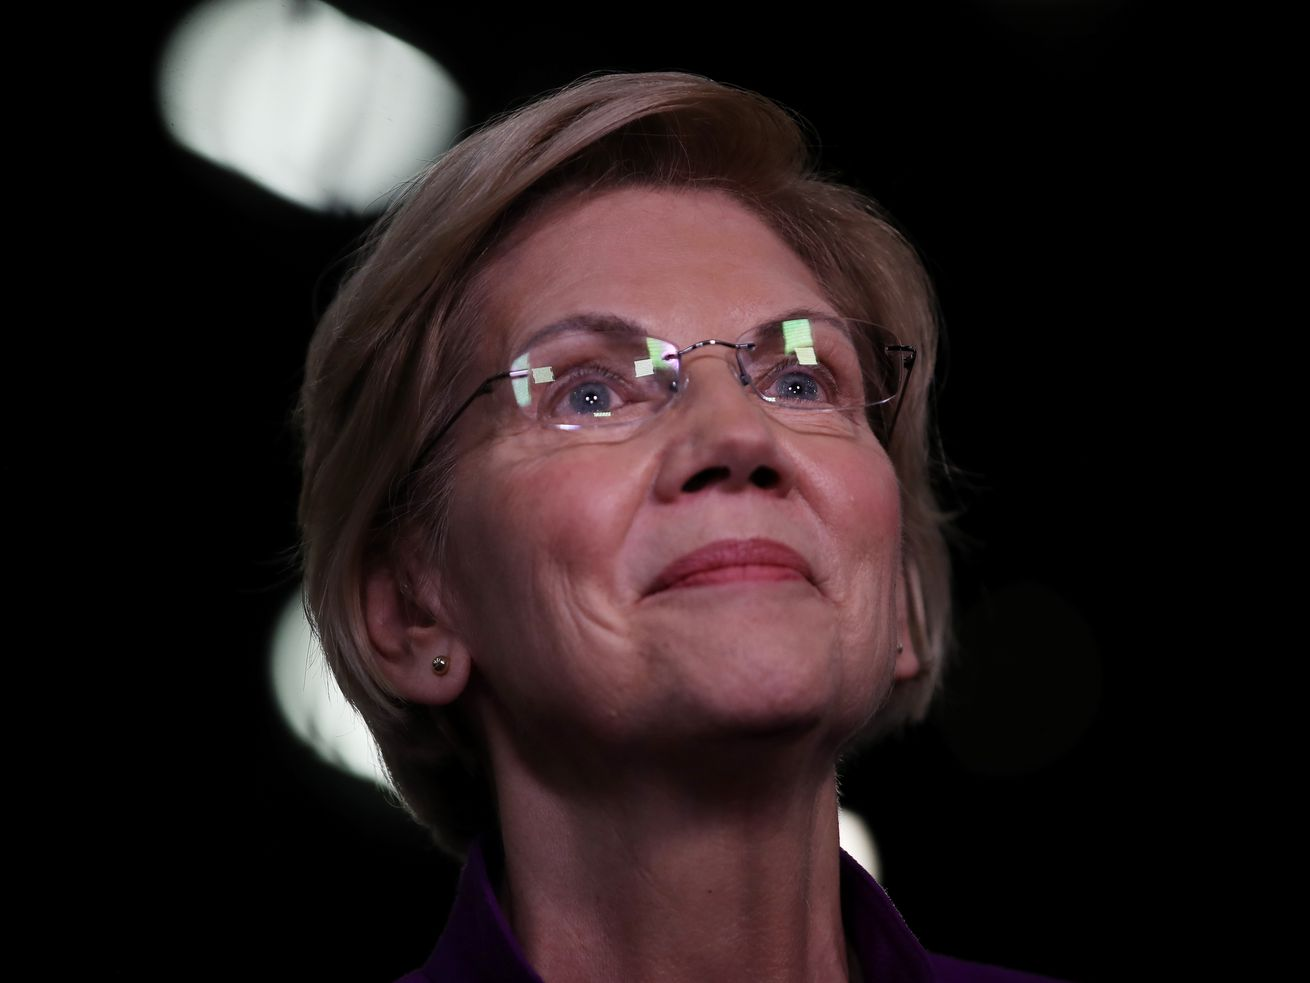 Sen. Elizabeth Warren (D-MA) speaks to the media in the spin room after the first night of the Democratic presidential debate on June 26, 2019, in Miami, Florida.